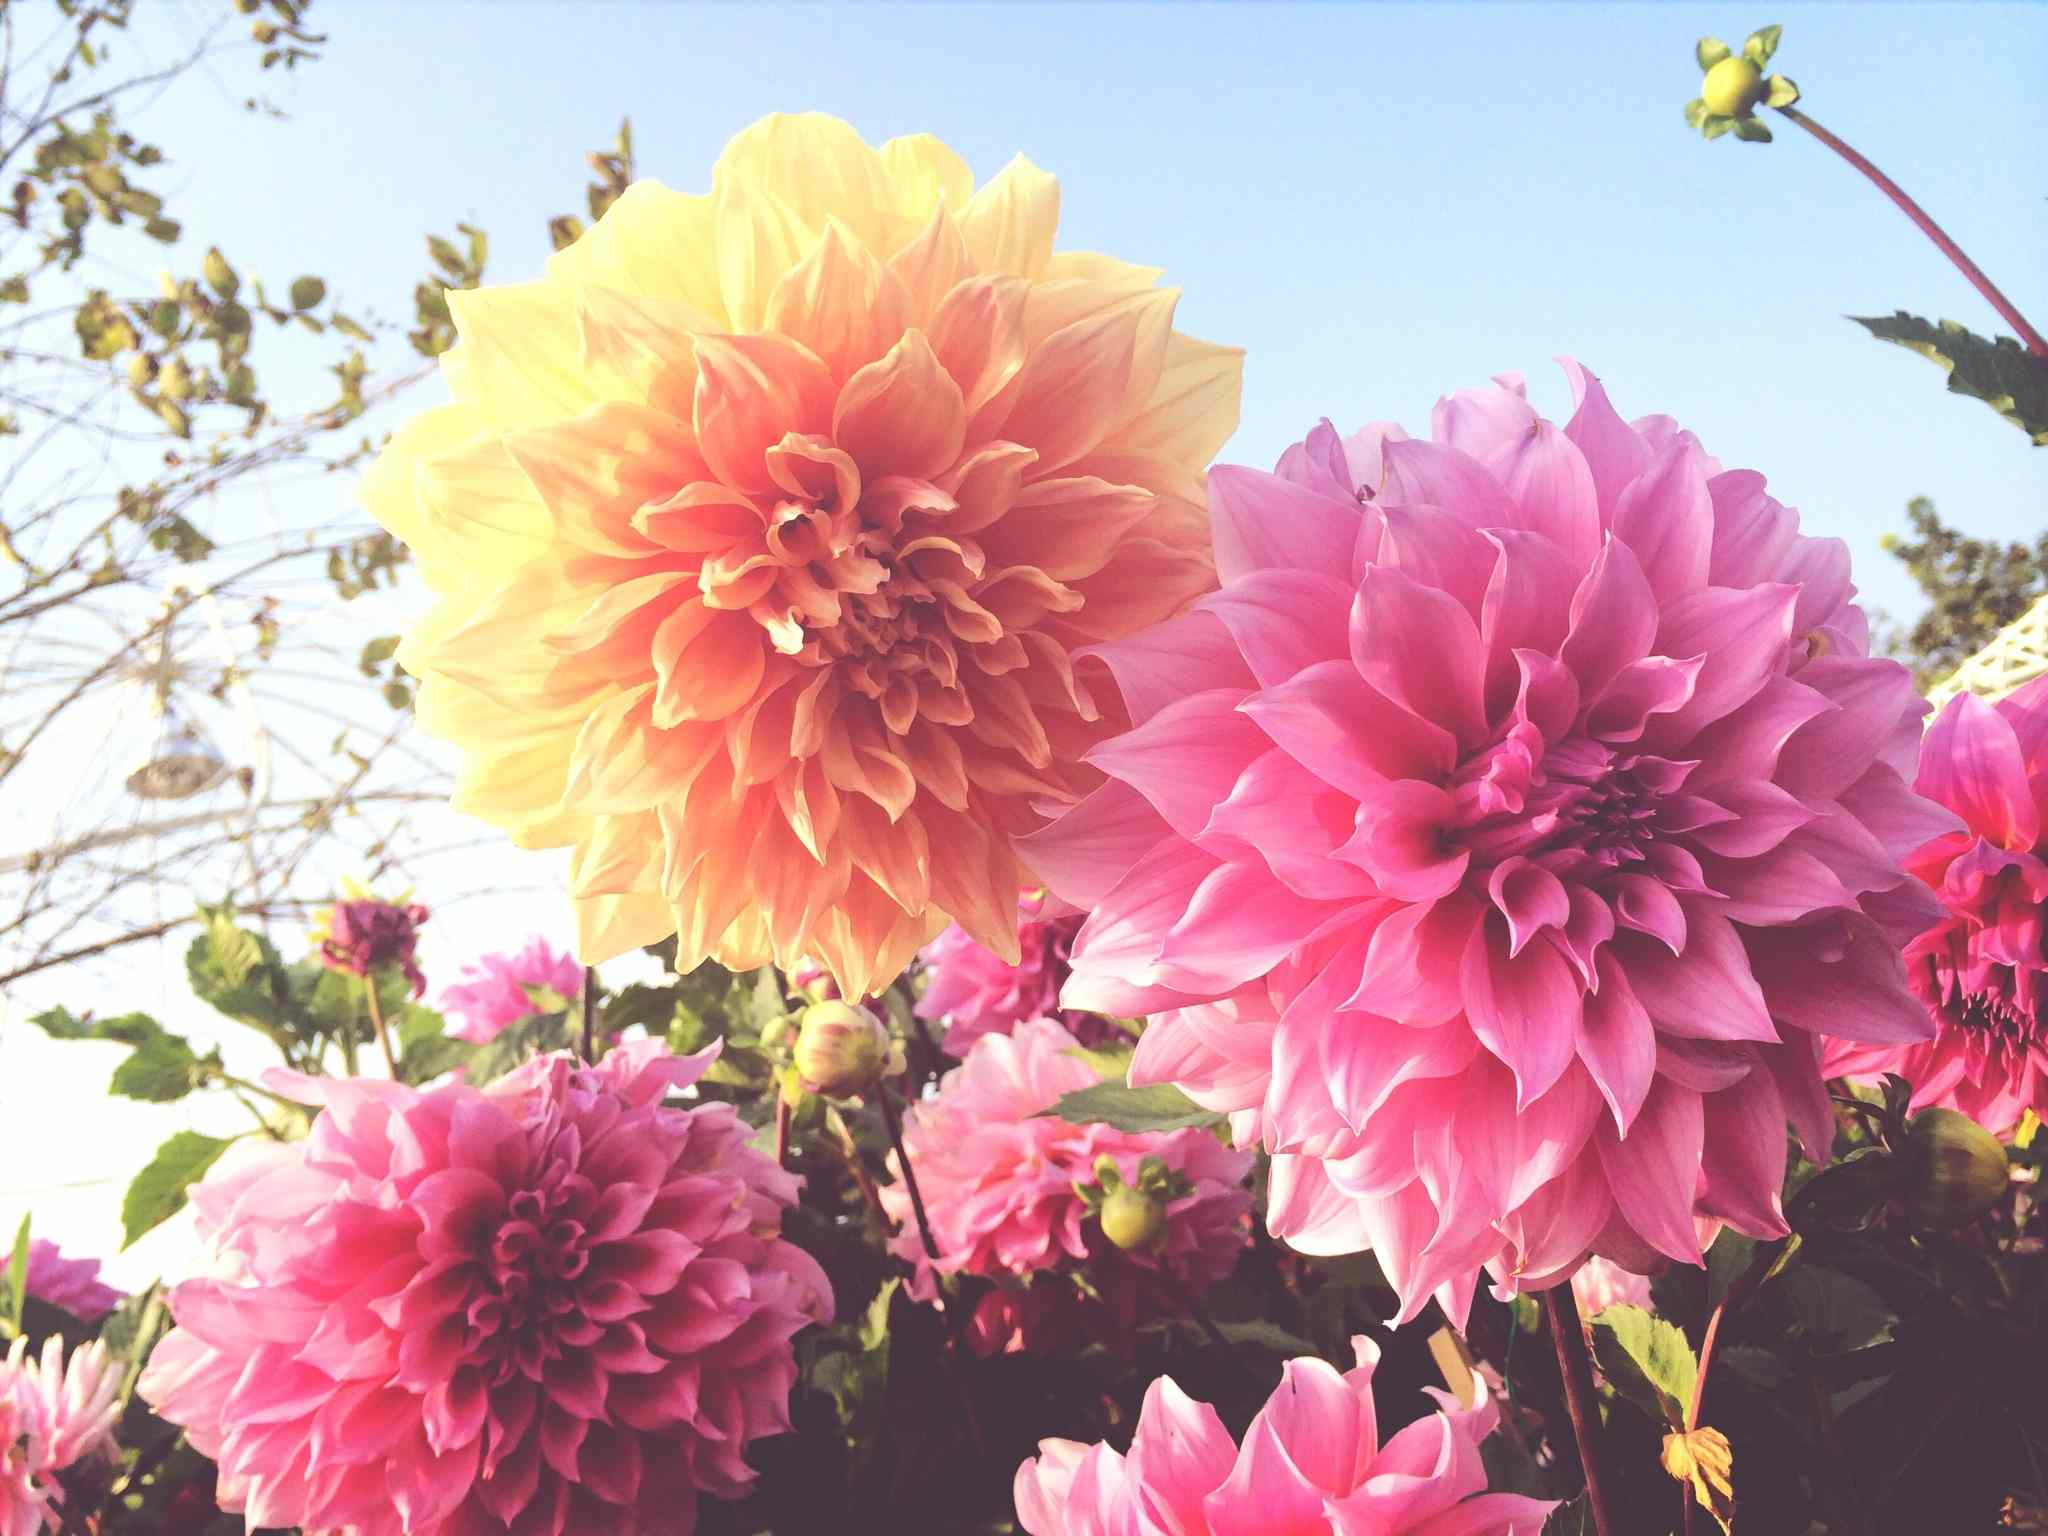 How To Grow Dahlias In Pots